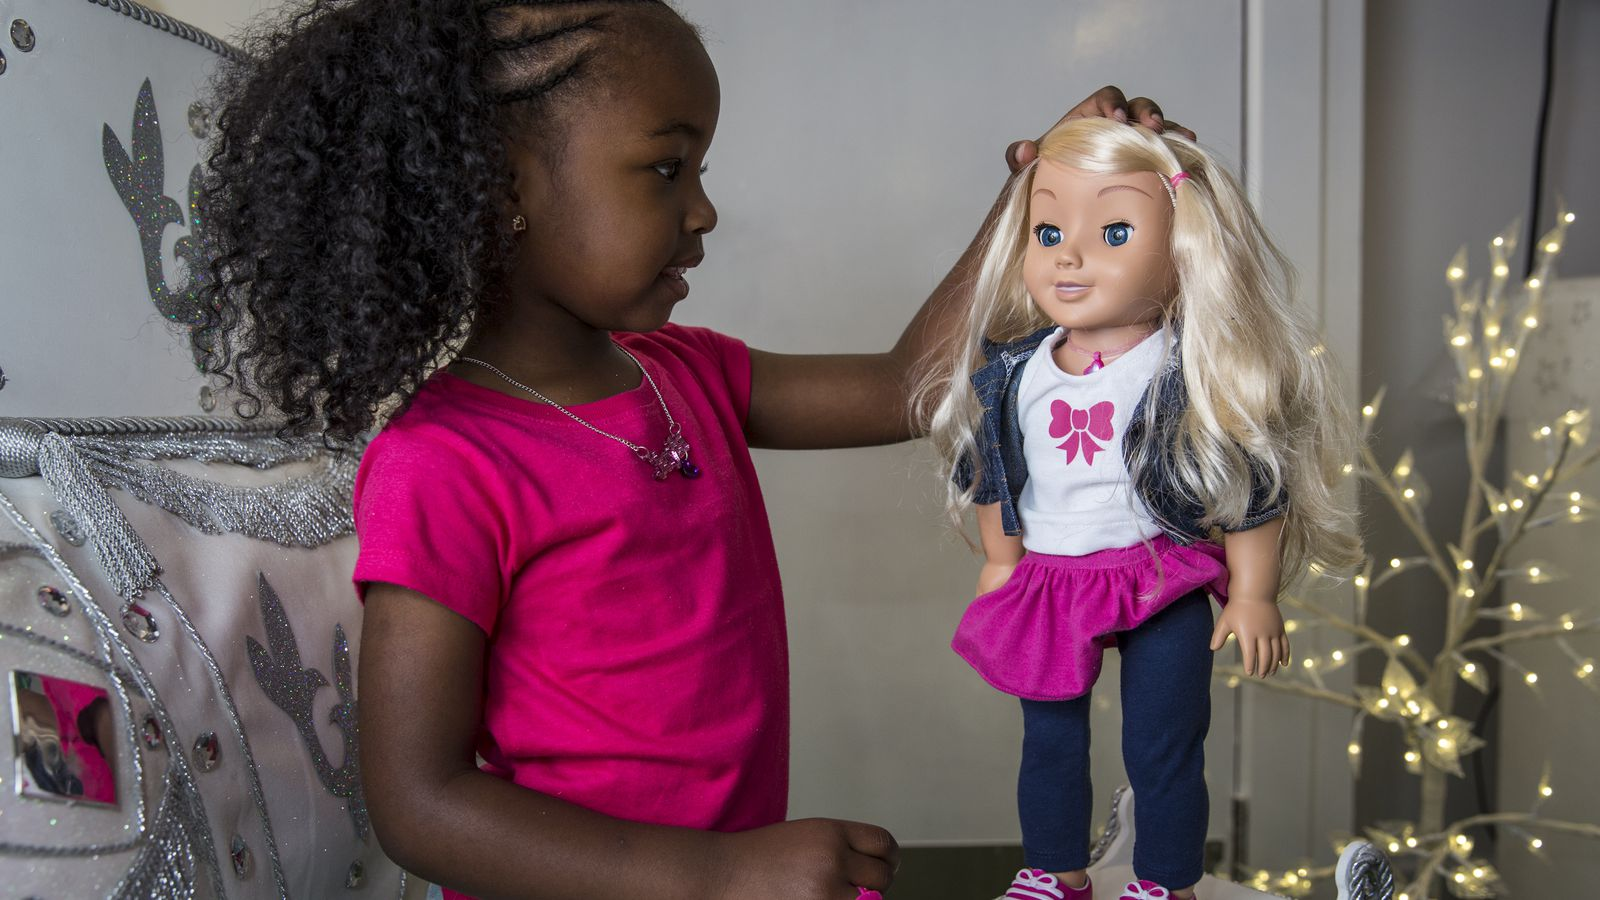 German Watchdog Tells Parents to Destroy Wi-Fi Connected Doll Over Surveillance Fears